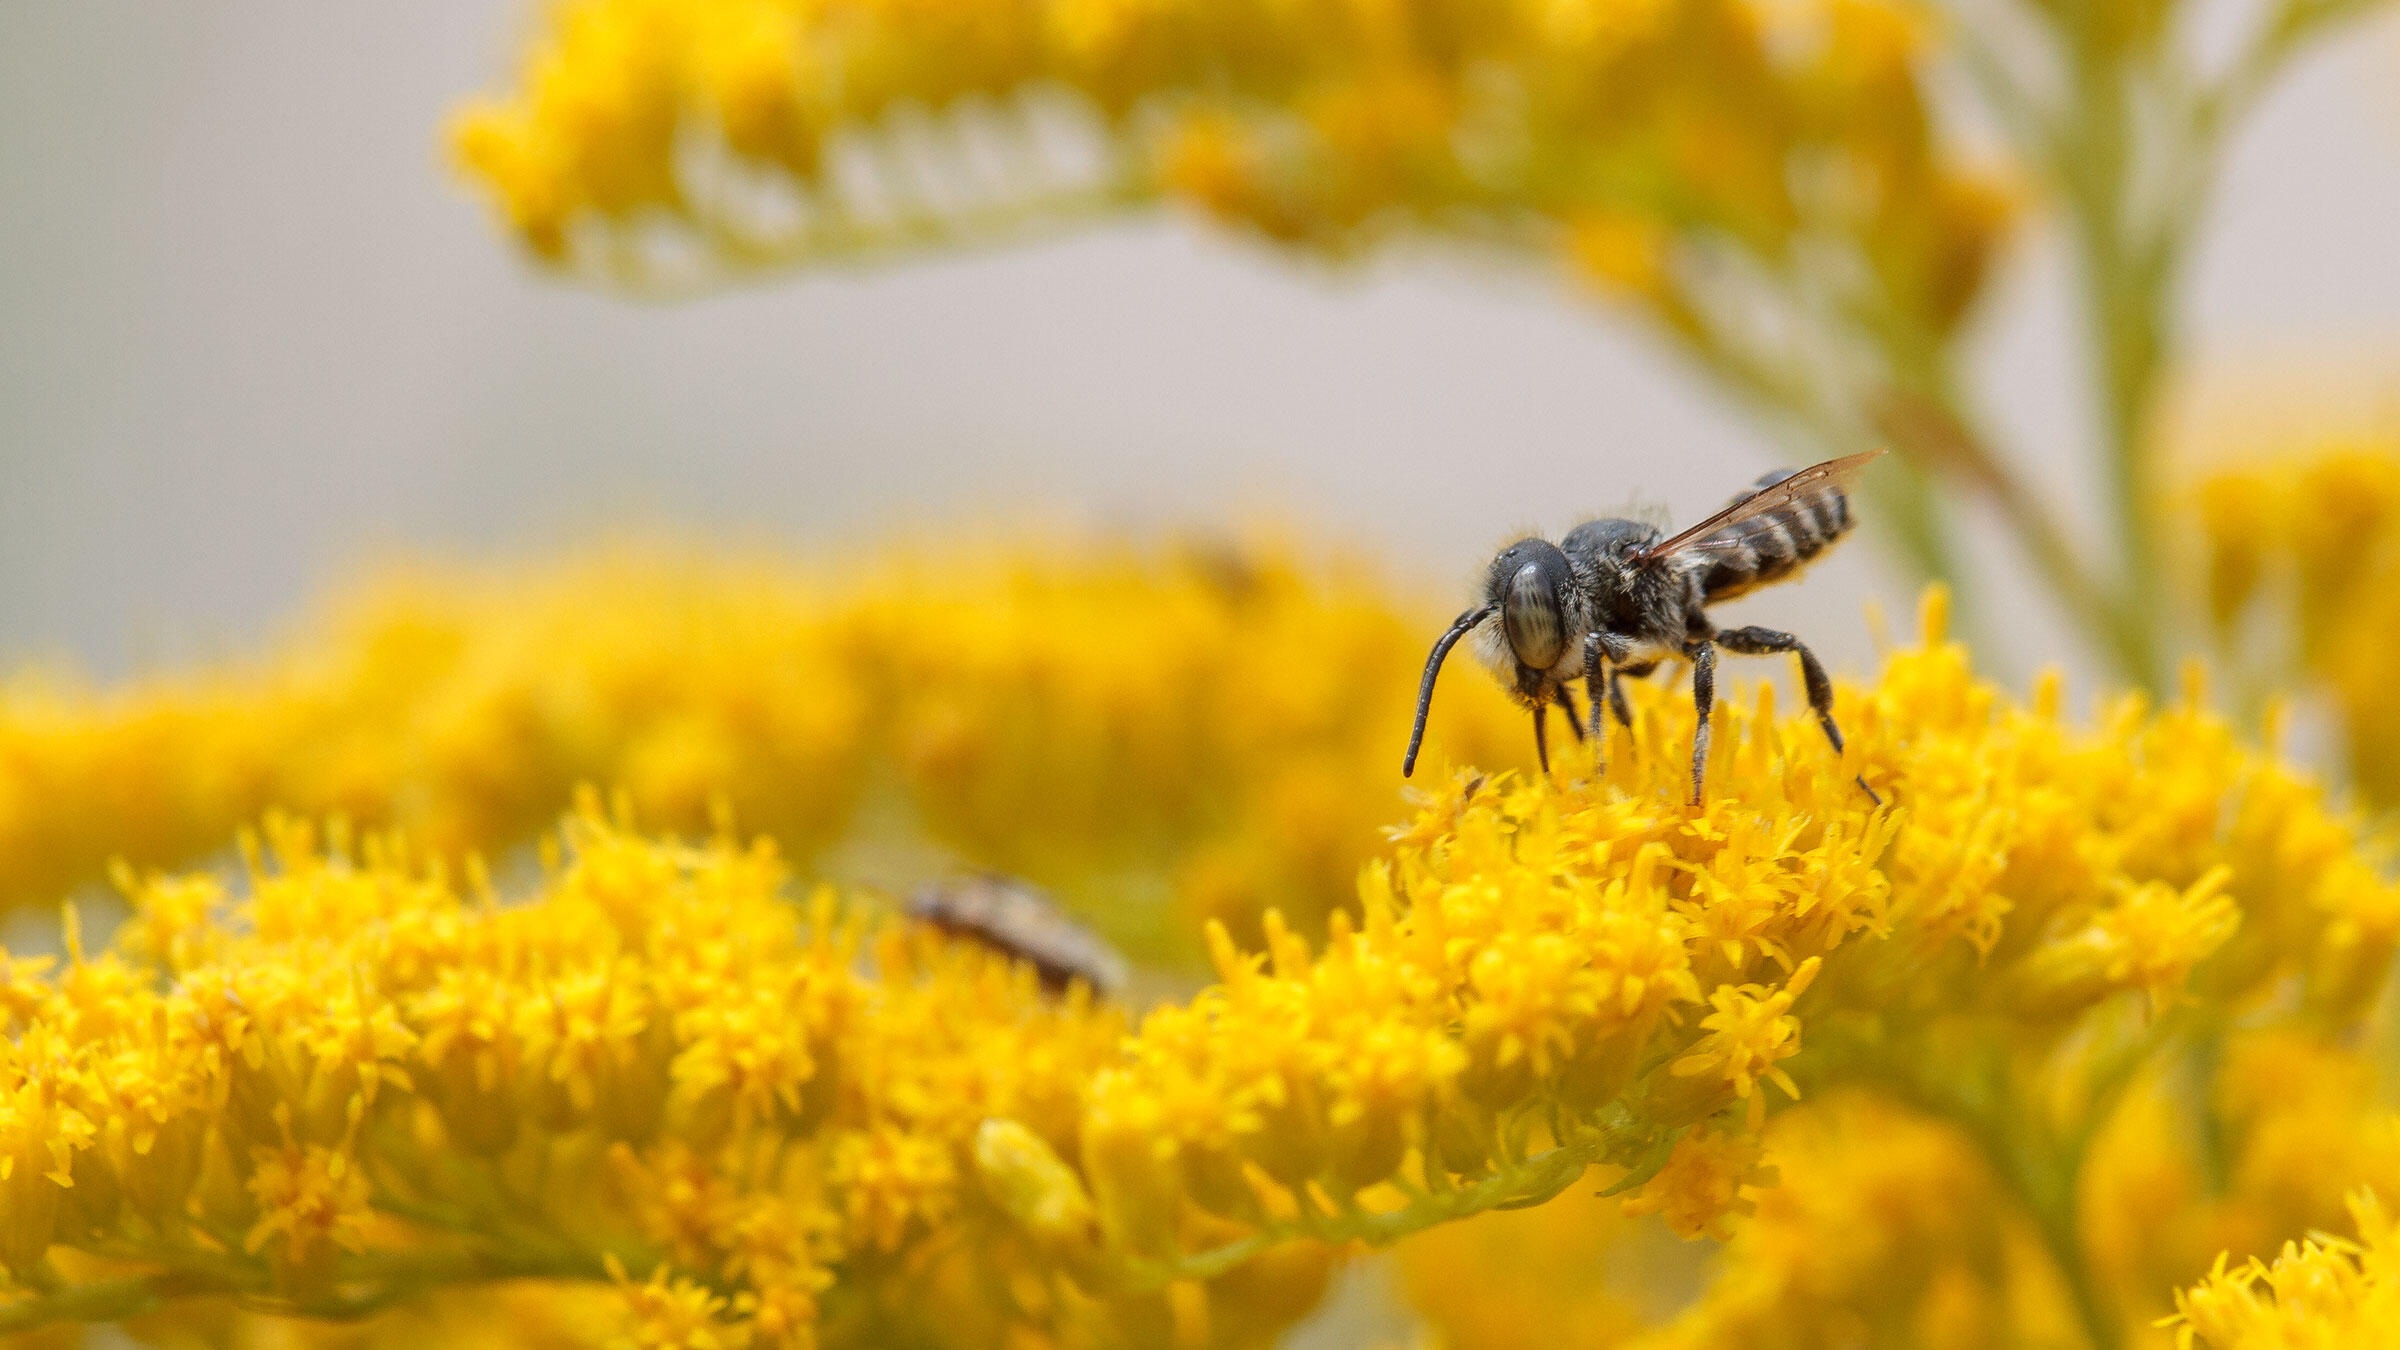 Leafcutter bee on native goldenrod flowers.